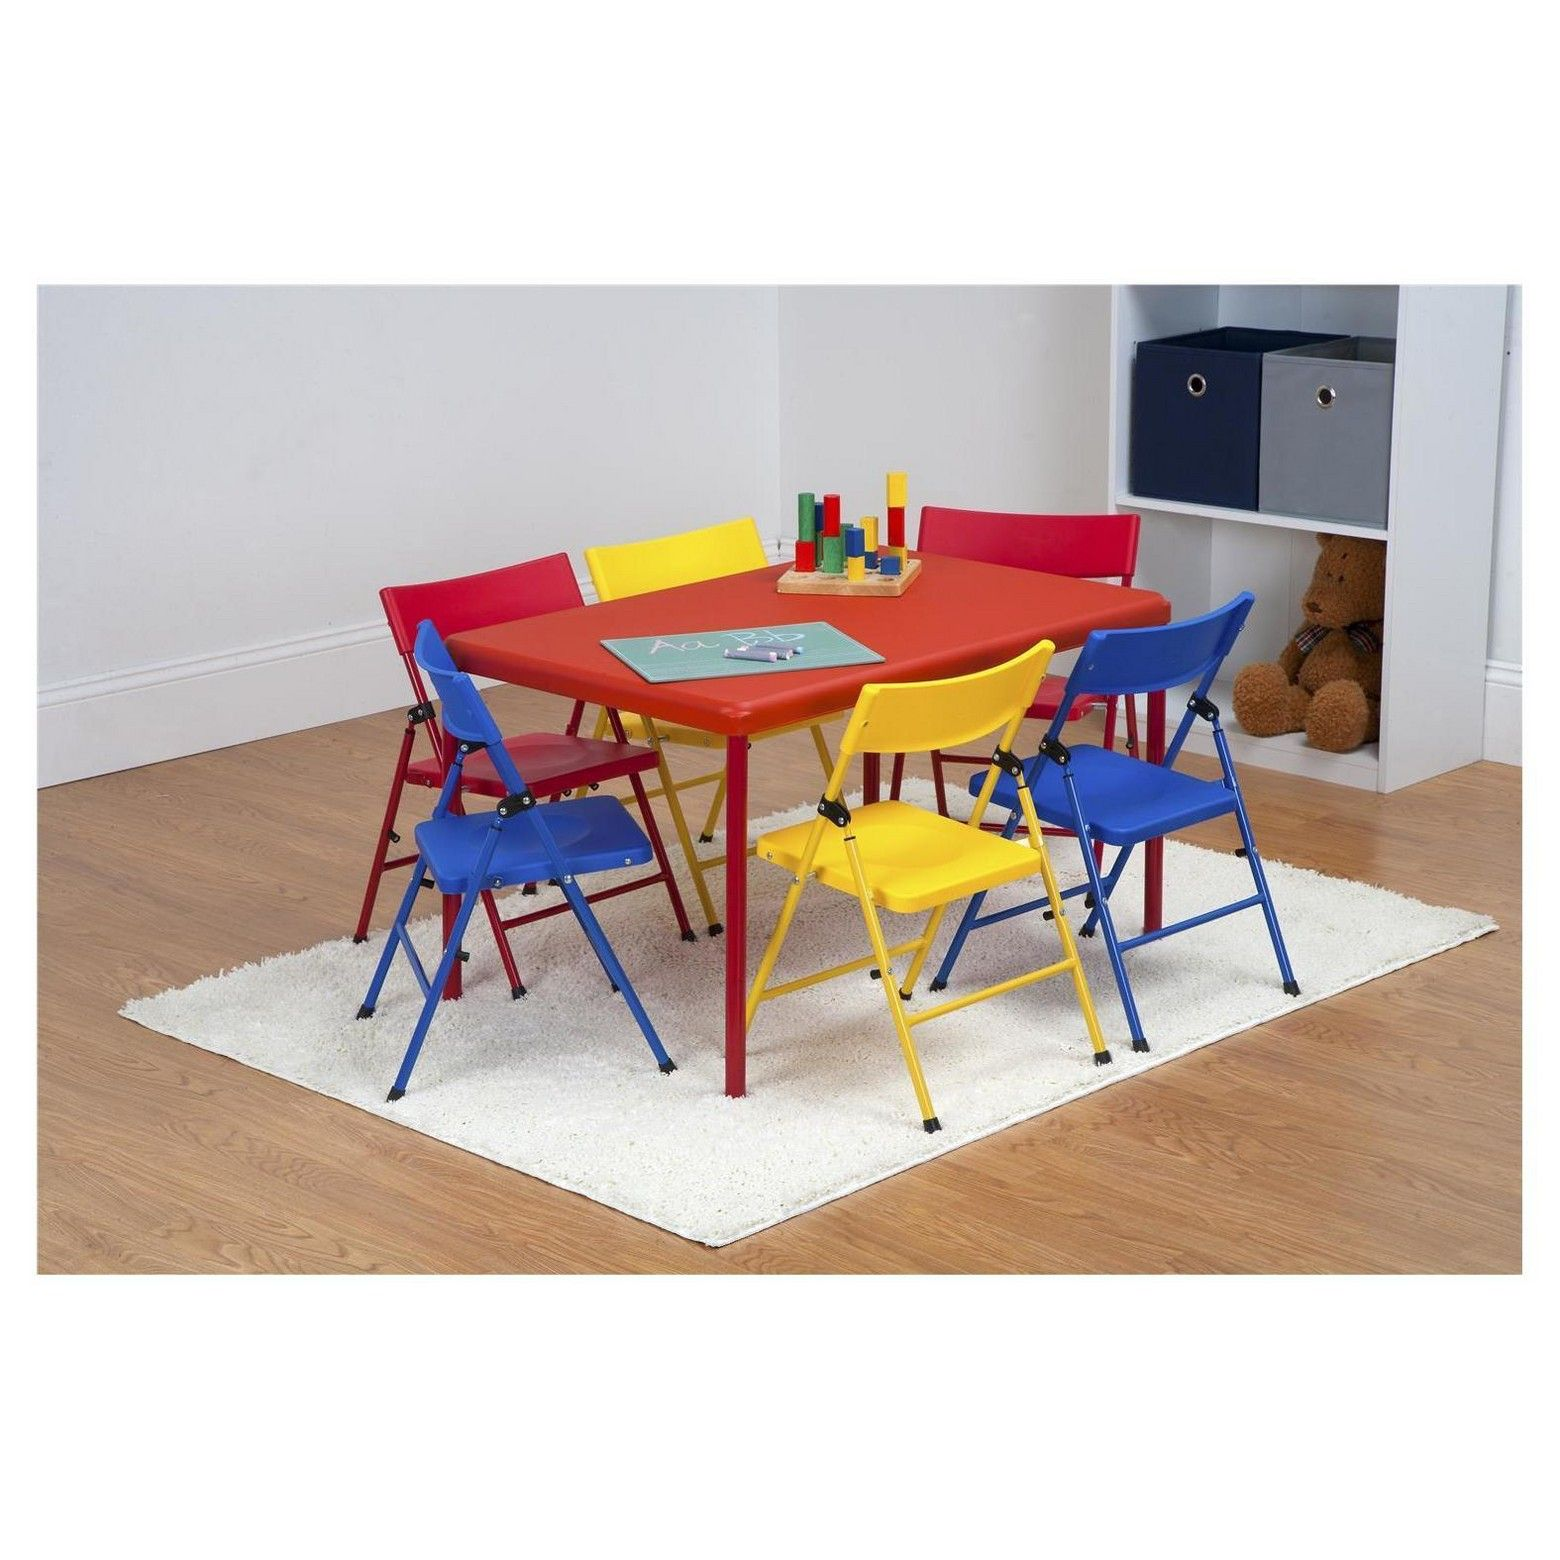 The Safety First 7 Piece Children Amp Rsquo S Juvenile Set With Pinch Free Folding Chairs An Kids Table Chair Set Childrens Folding Table Kids Table And Chairs